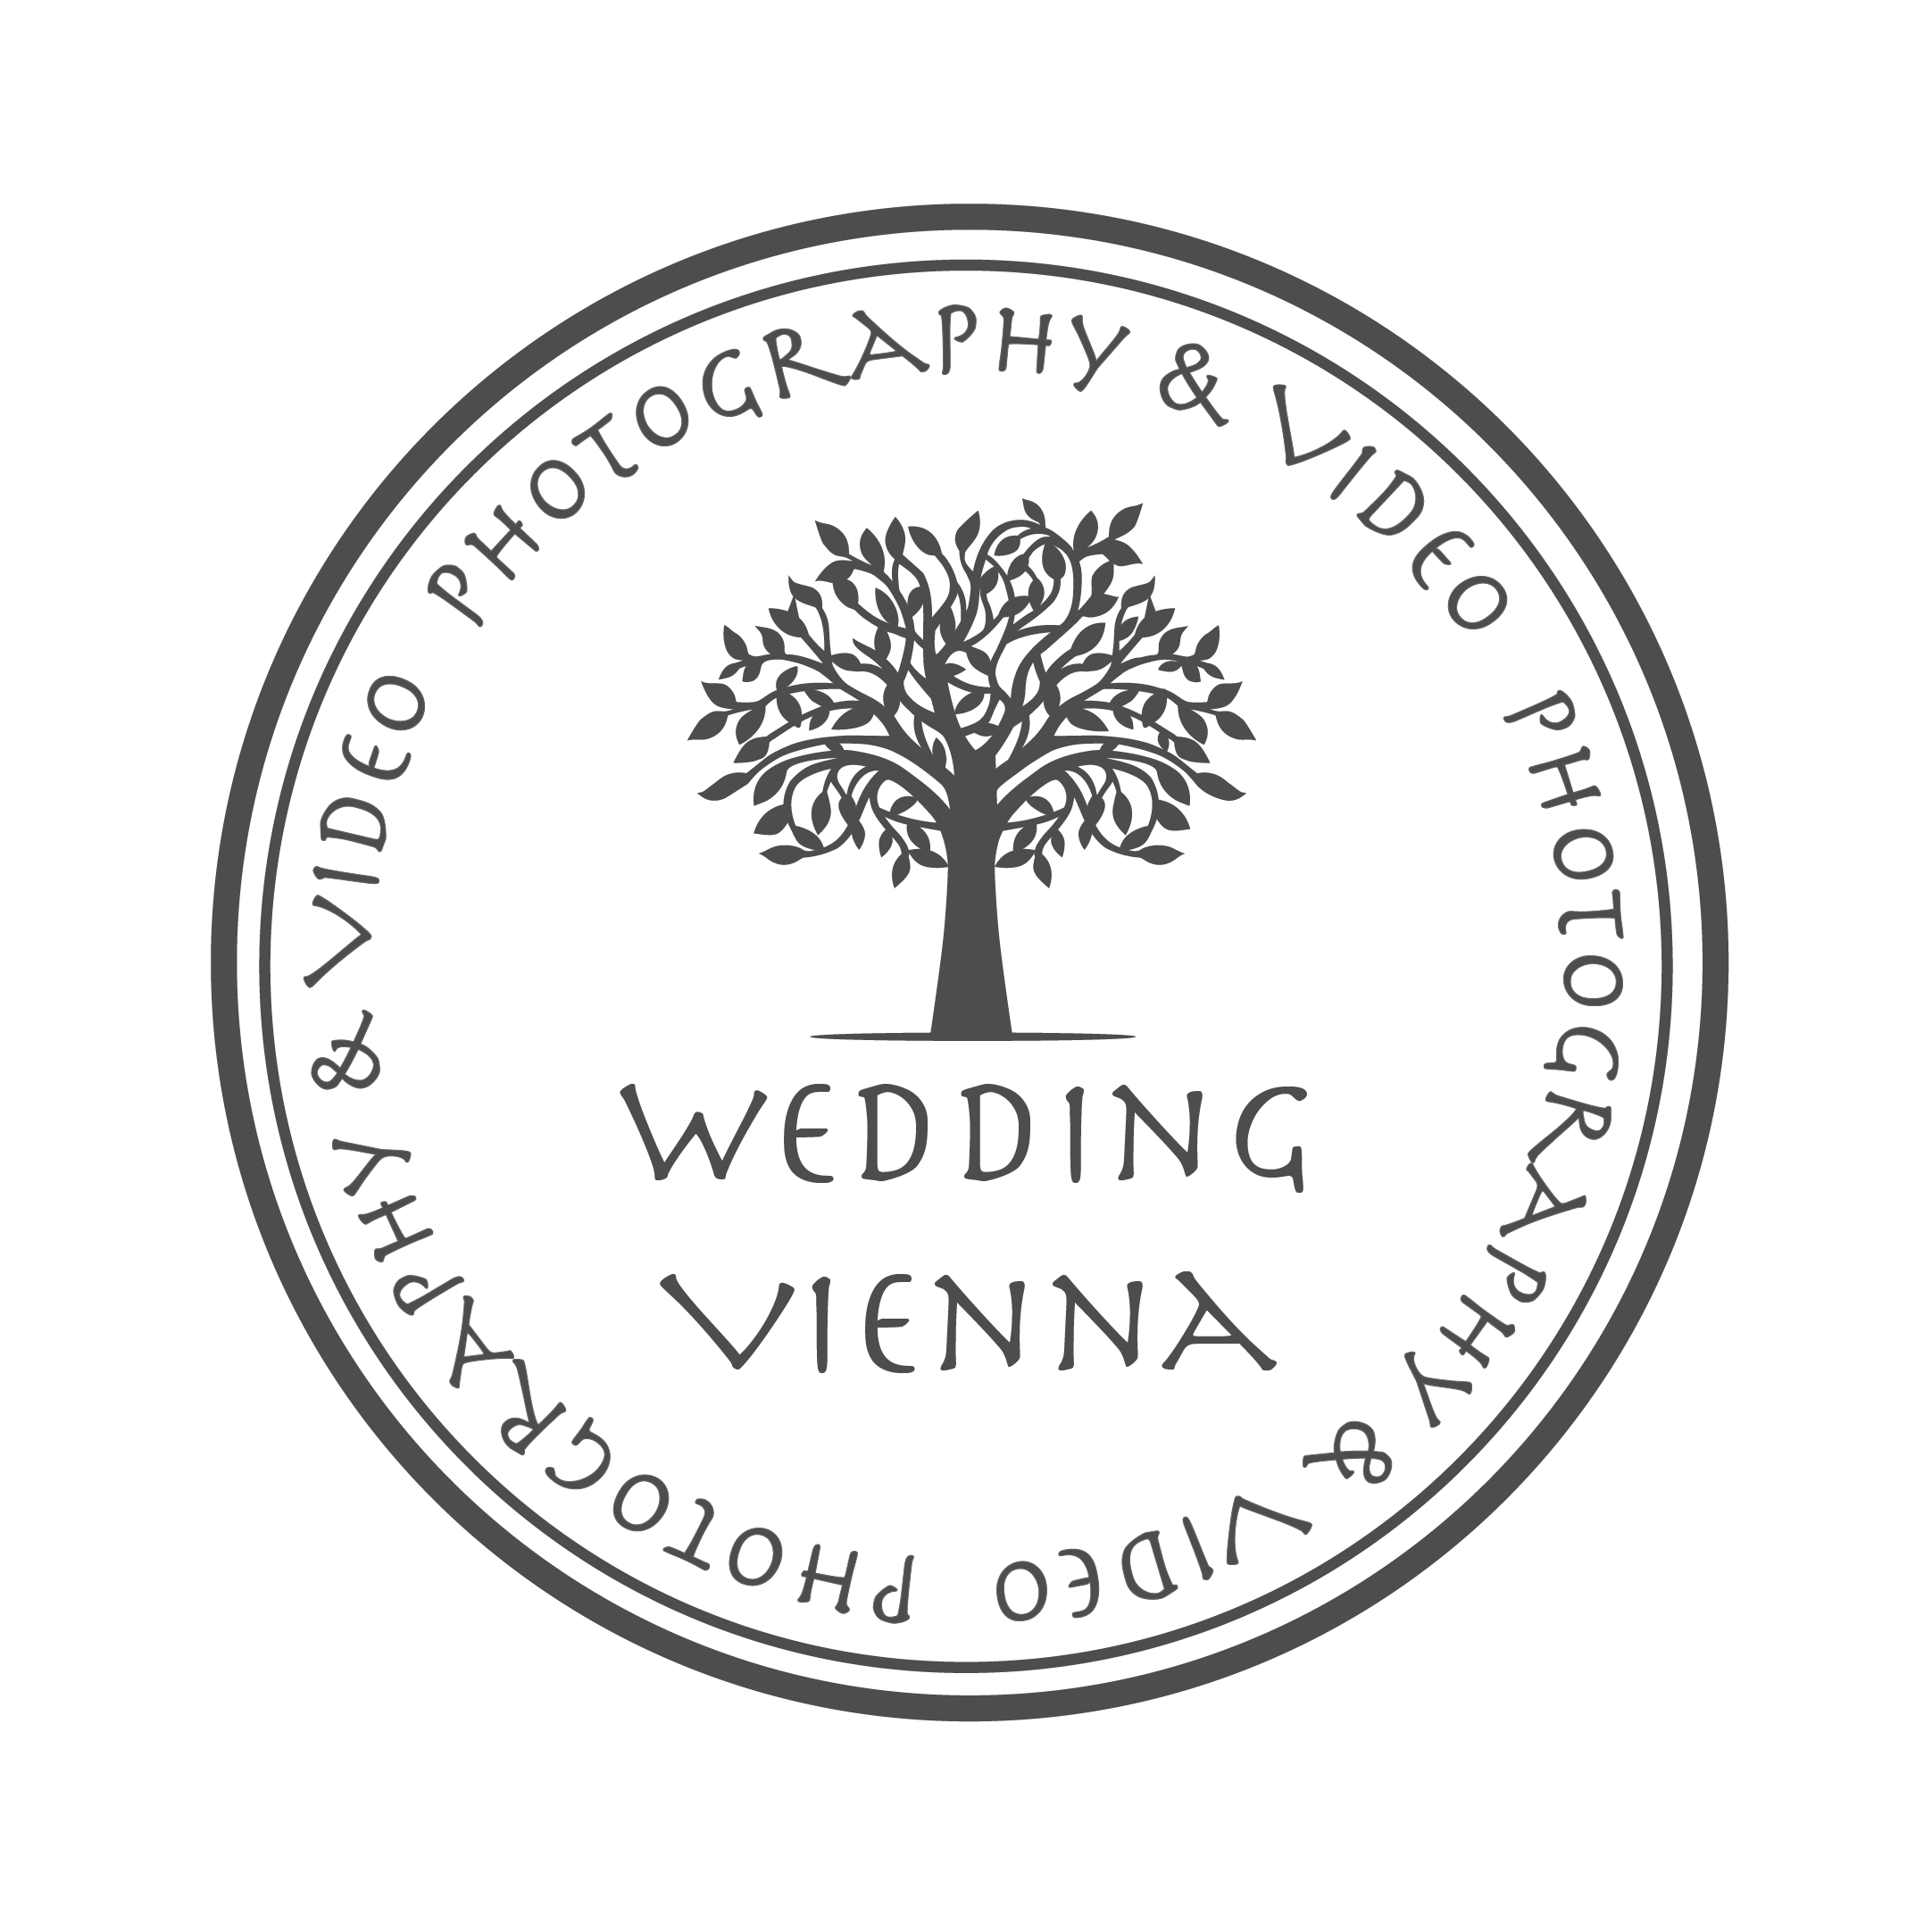 Wedding Vienna 2017